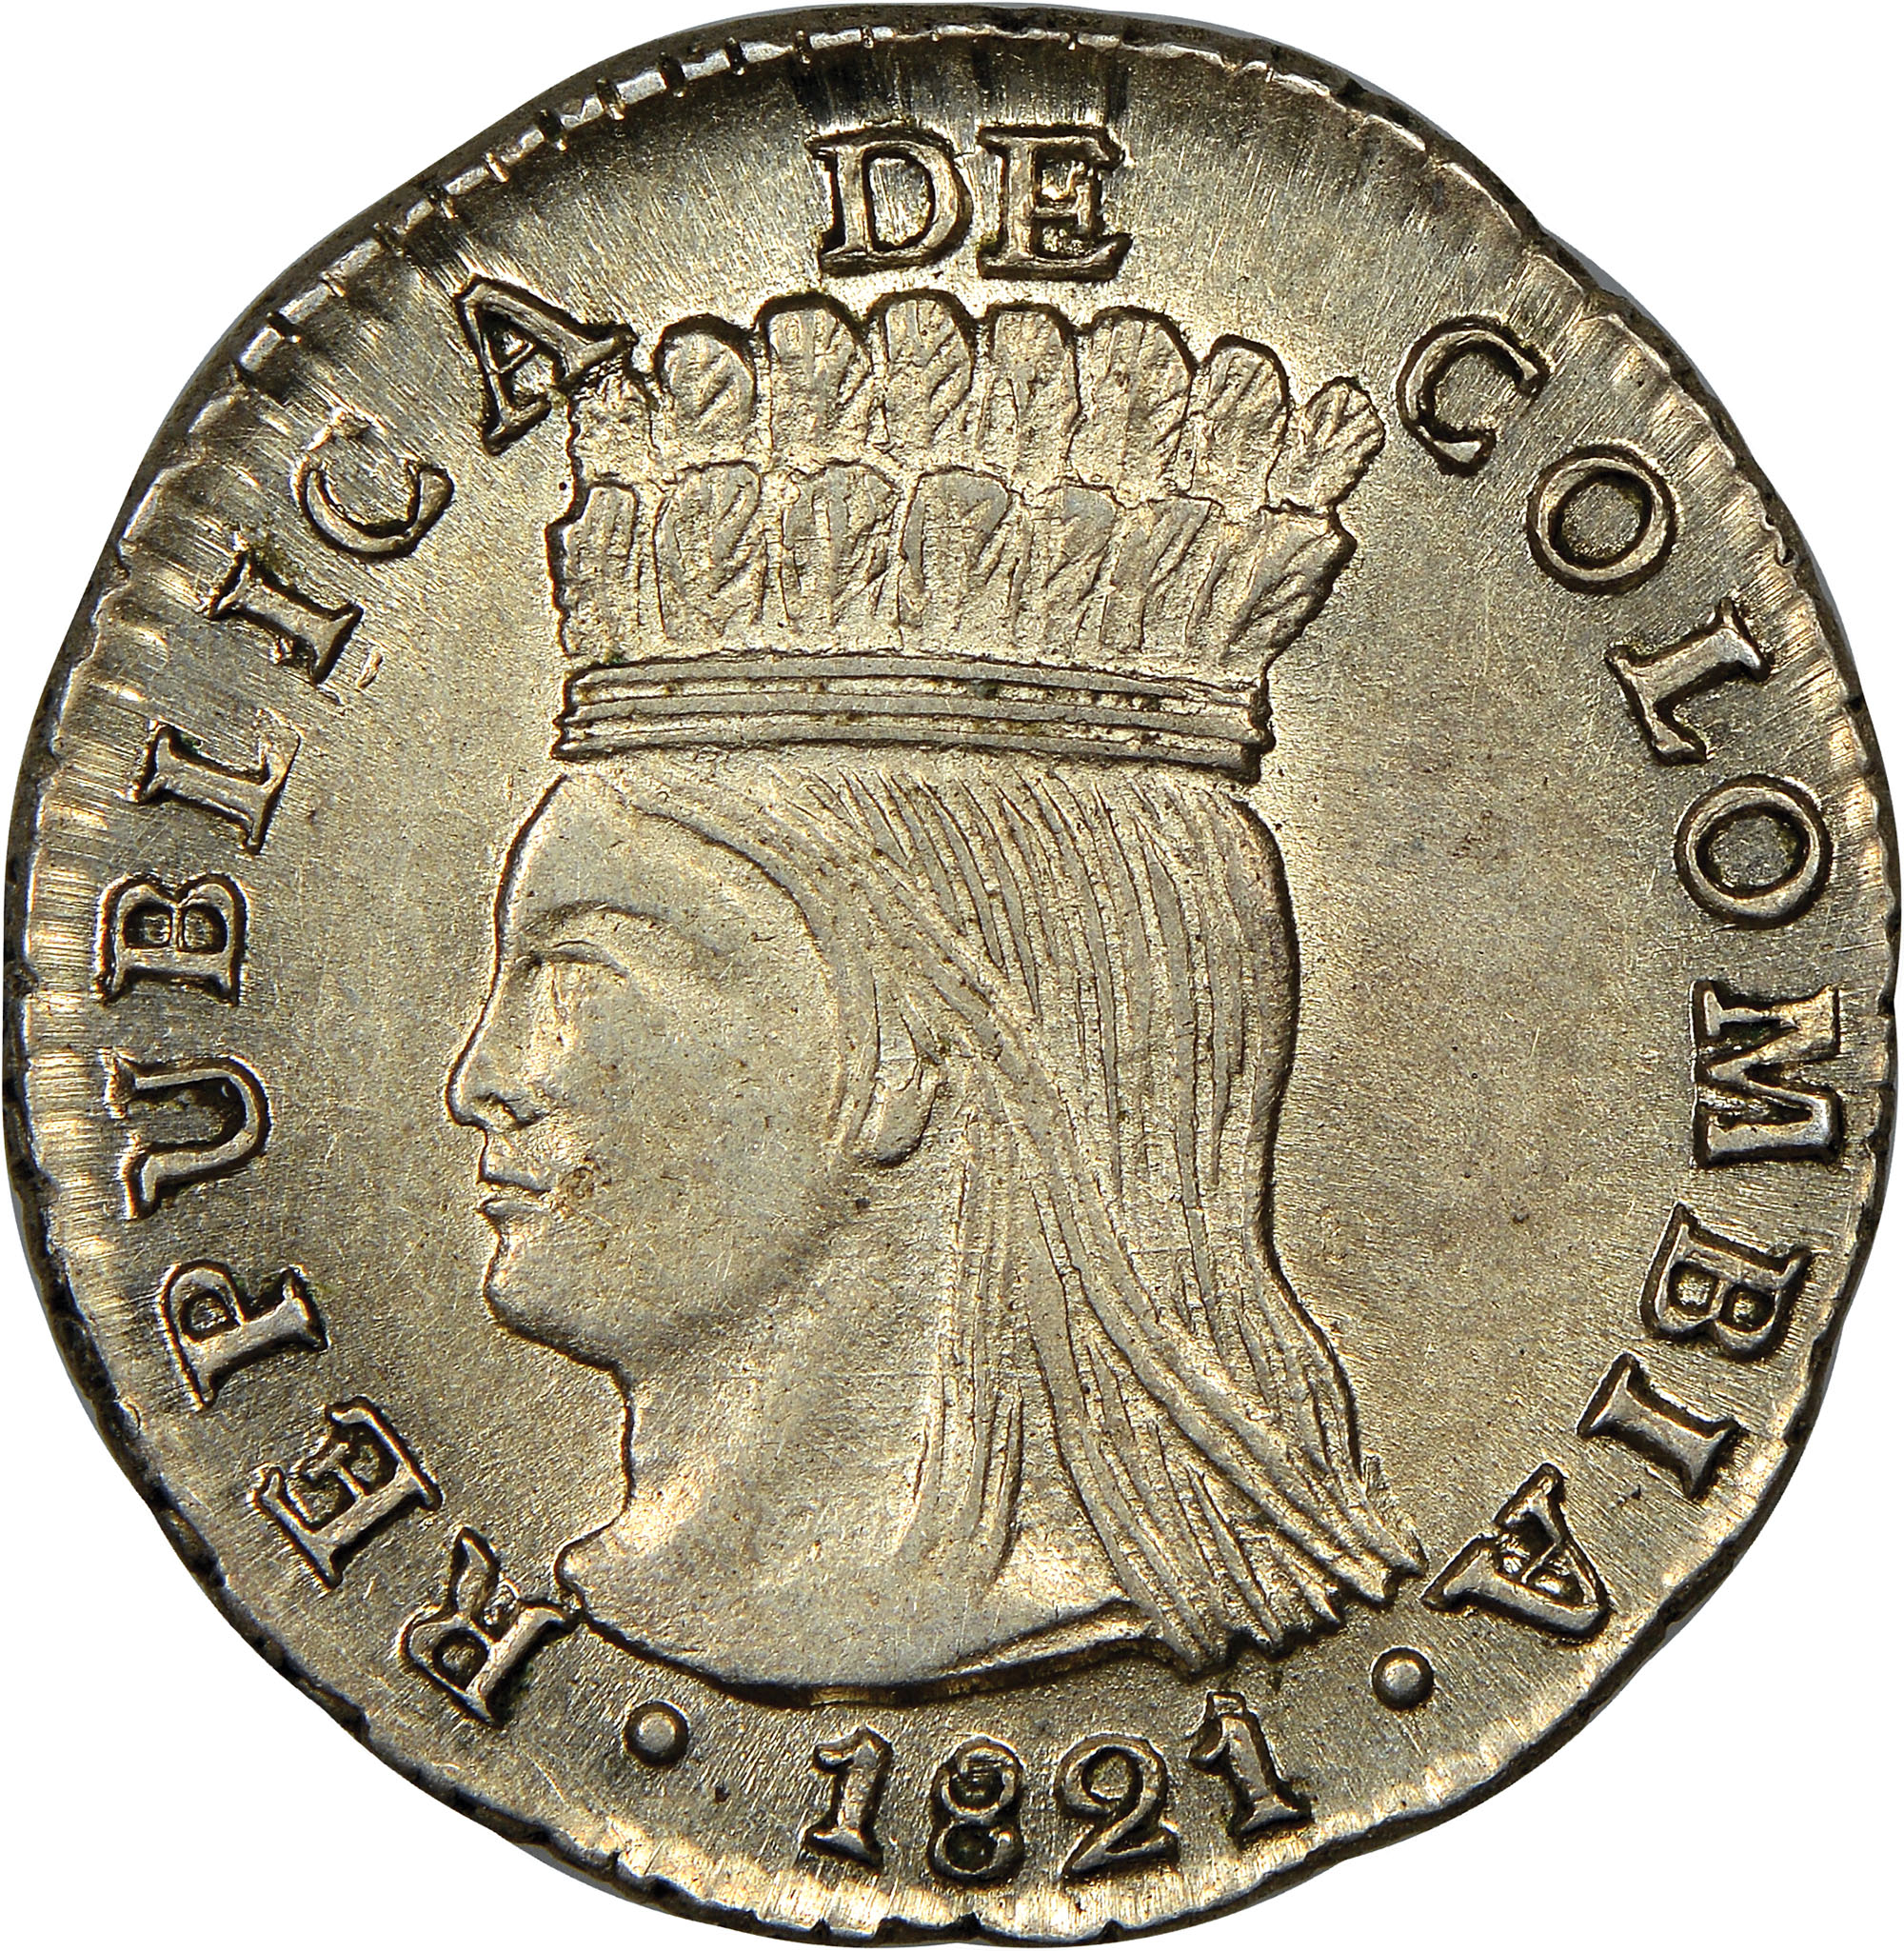 Colombia Real obverse